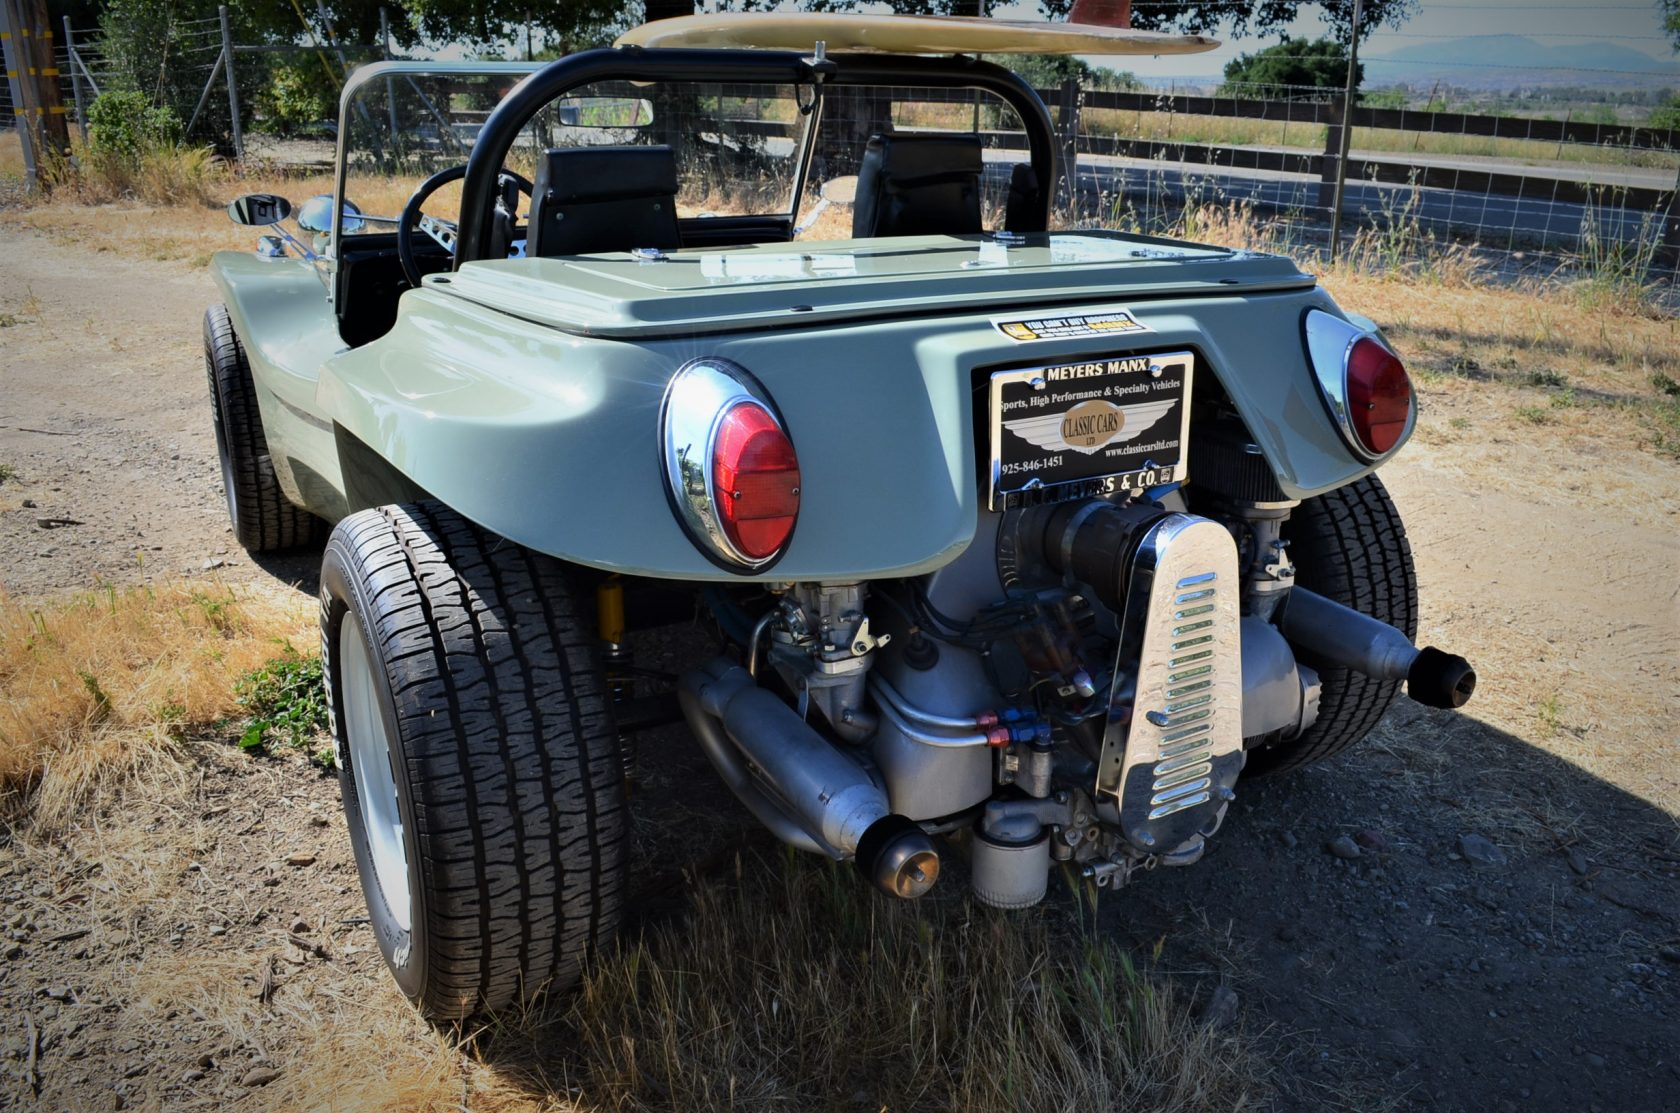 1957 MANX DUNE BUGGY – CLASSIC CARS LTD, Pleasanton California